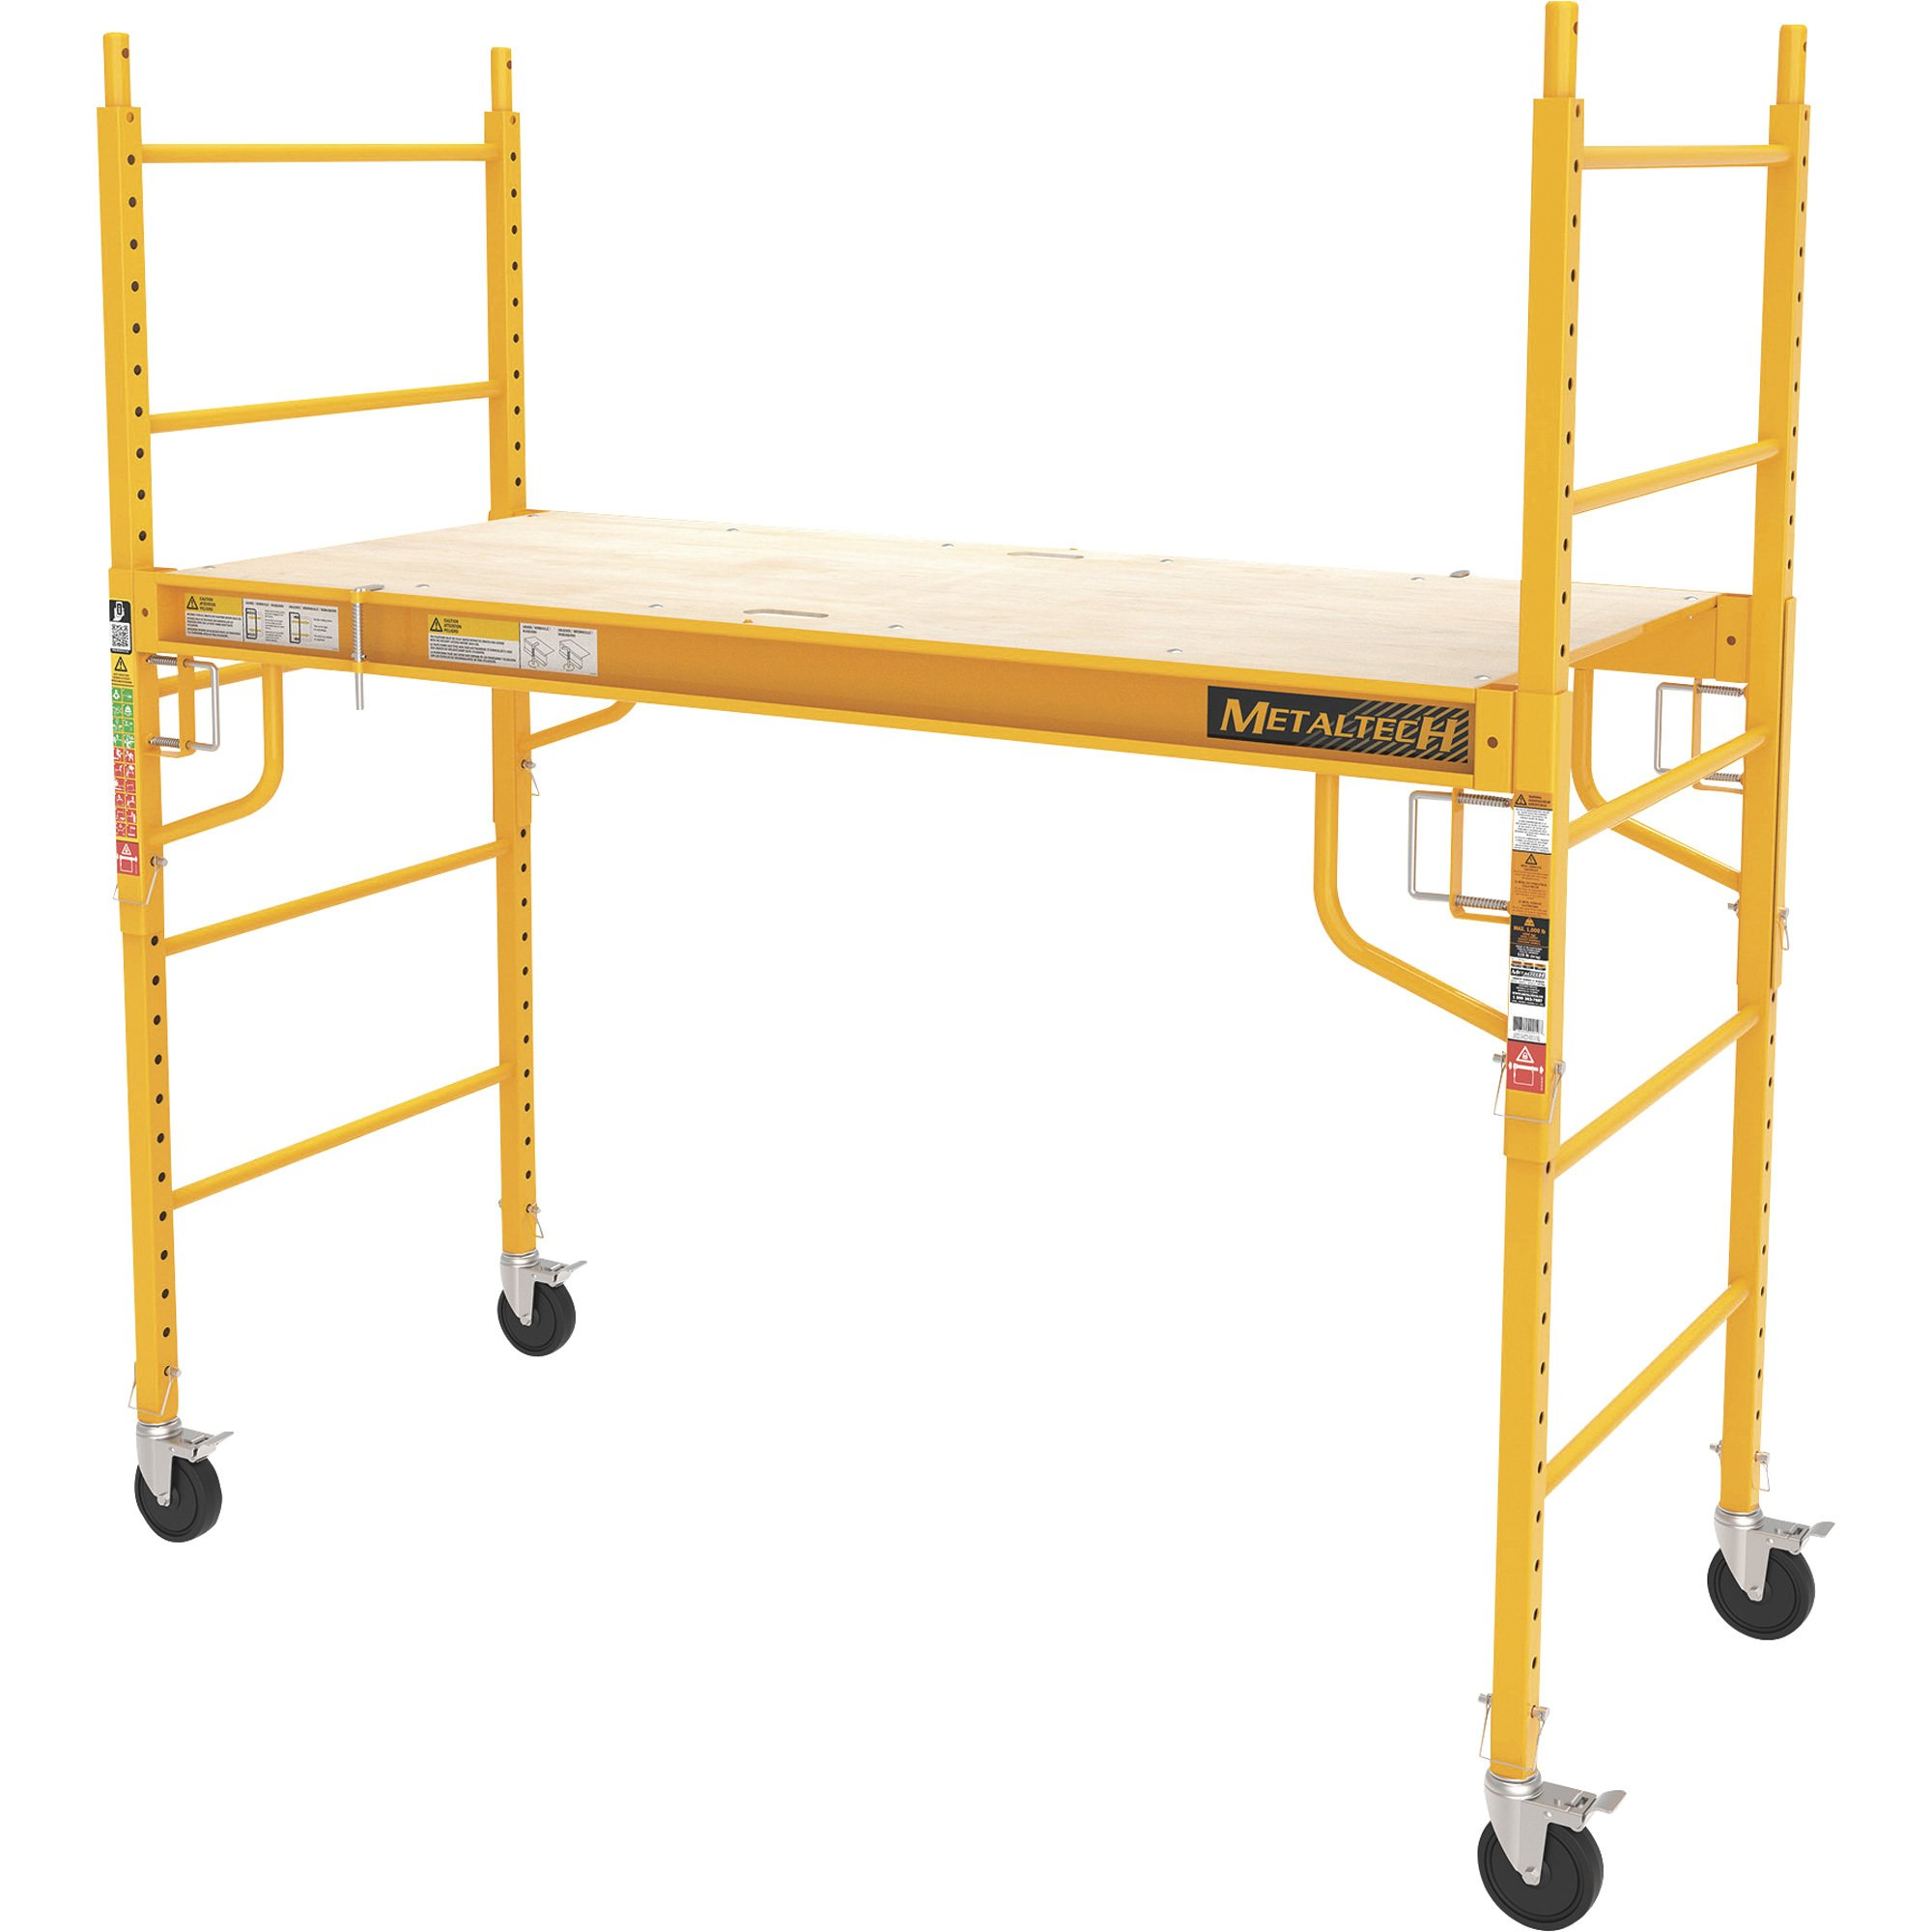 home depot rolling ladders with Baker Scaffold Dimensions on Acro 11082 Ladder Hook further 50197185 in addition Nu Wavesteelstepupminiscaffold moreover  in addition 303982173.